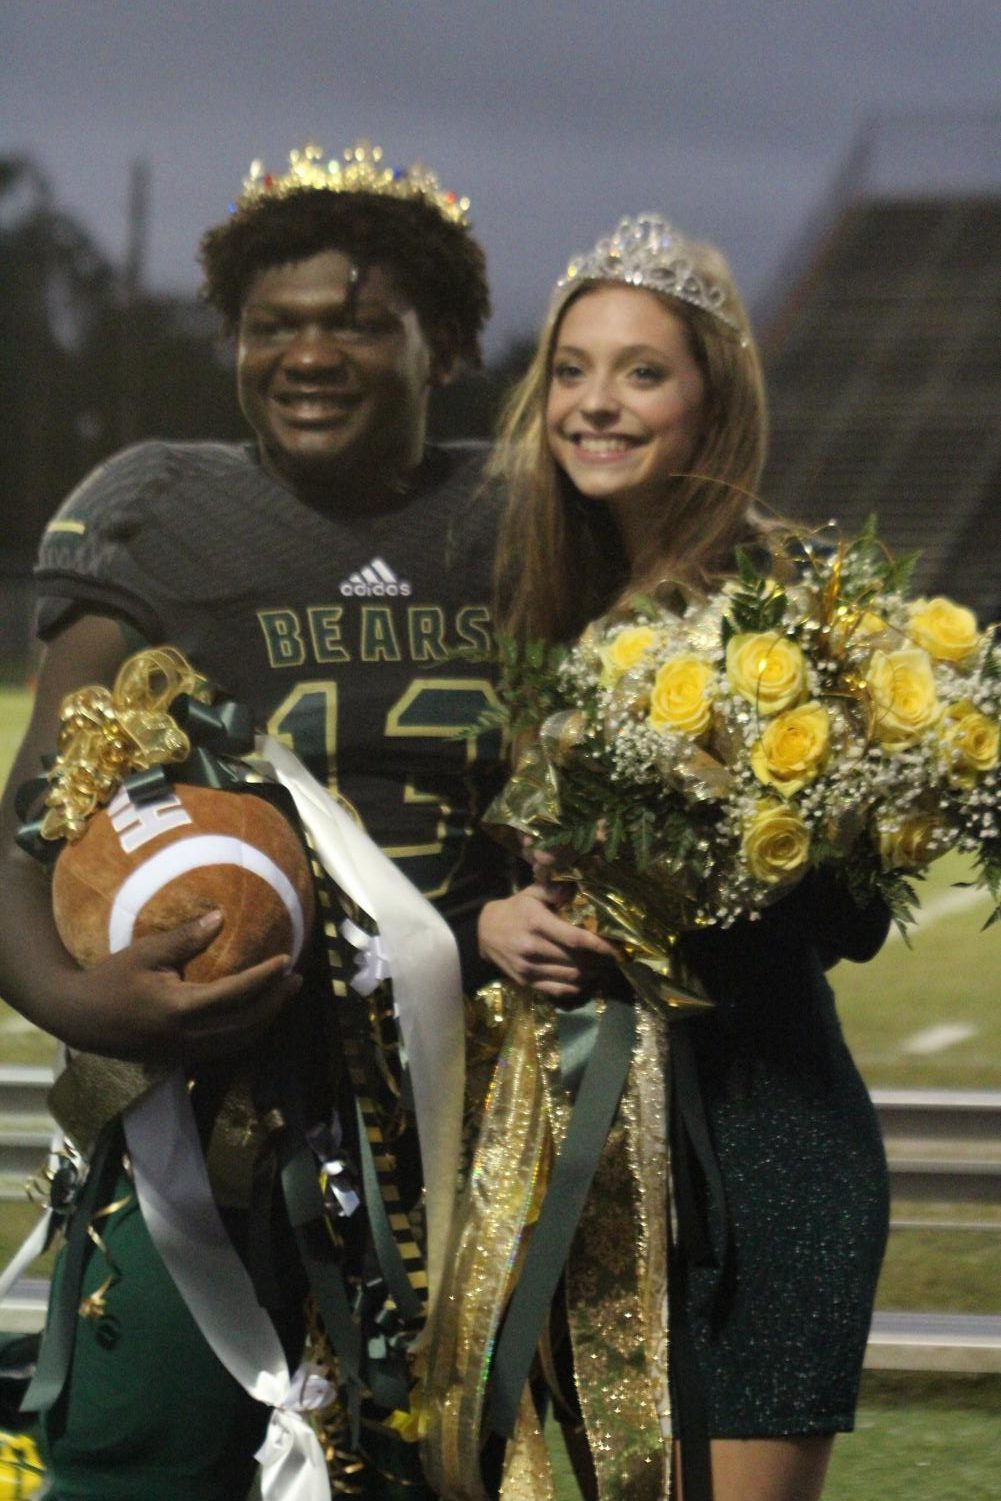 Seniors Ethan McCollum and Avery Holland were crowned Homecoming King and Queen.